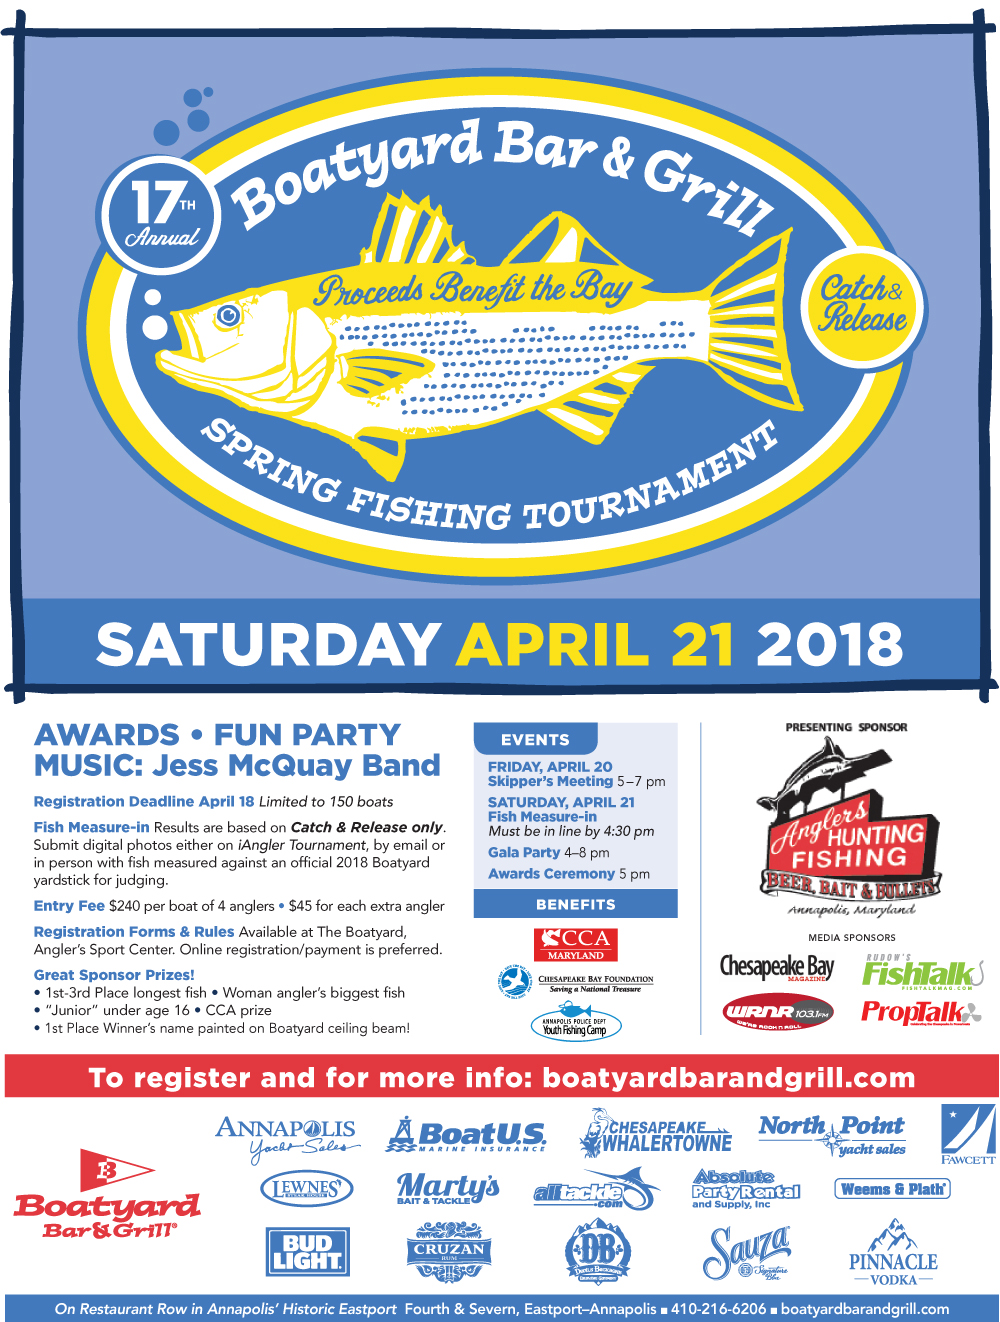 17th-Annual-Boatyard-Bar--Grill-Opening-Day-Rockfish-Tournament